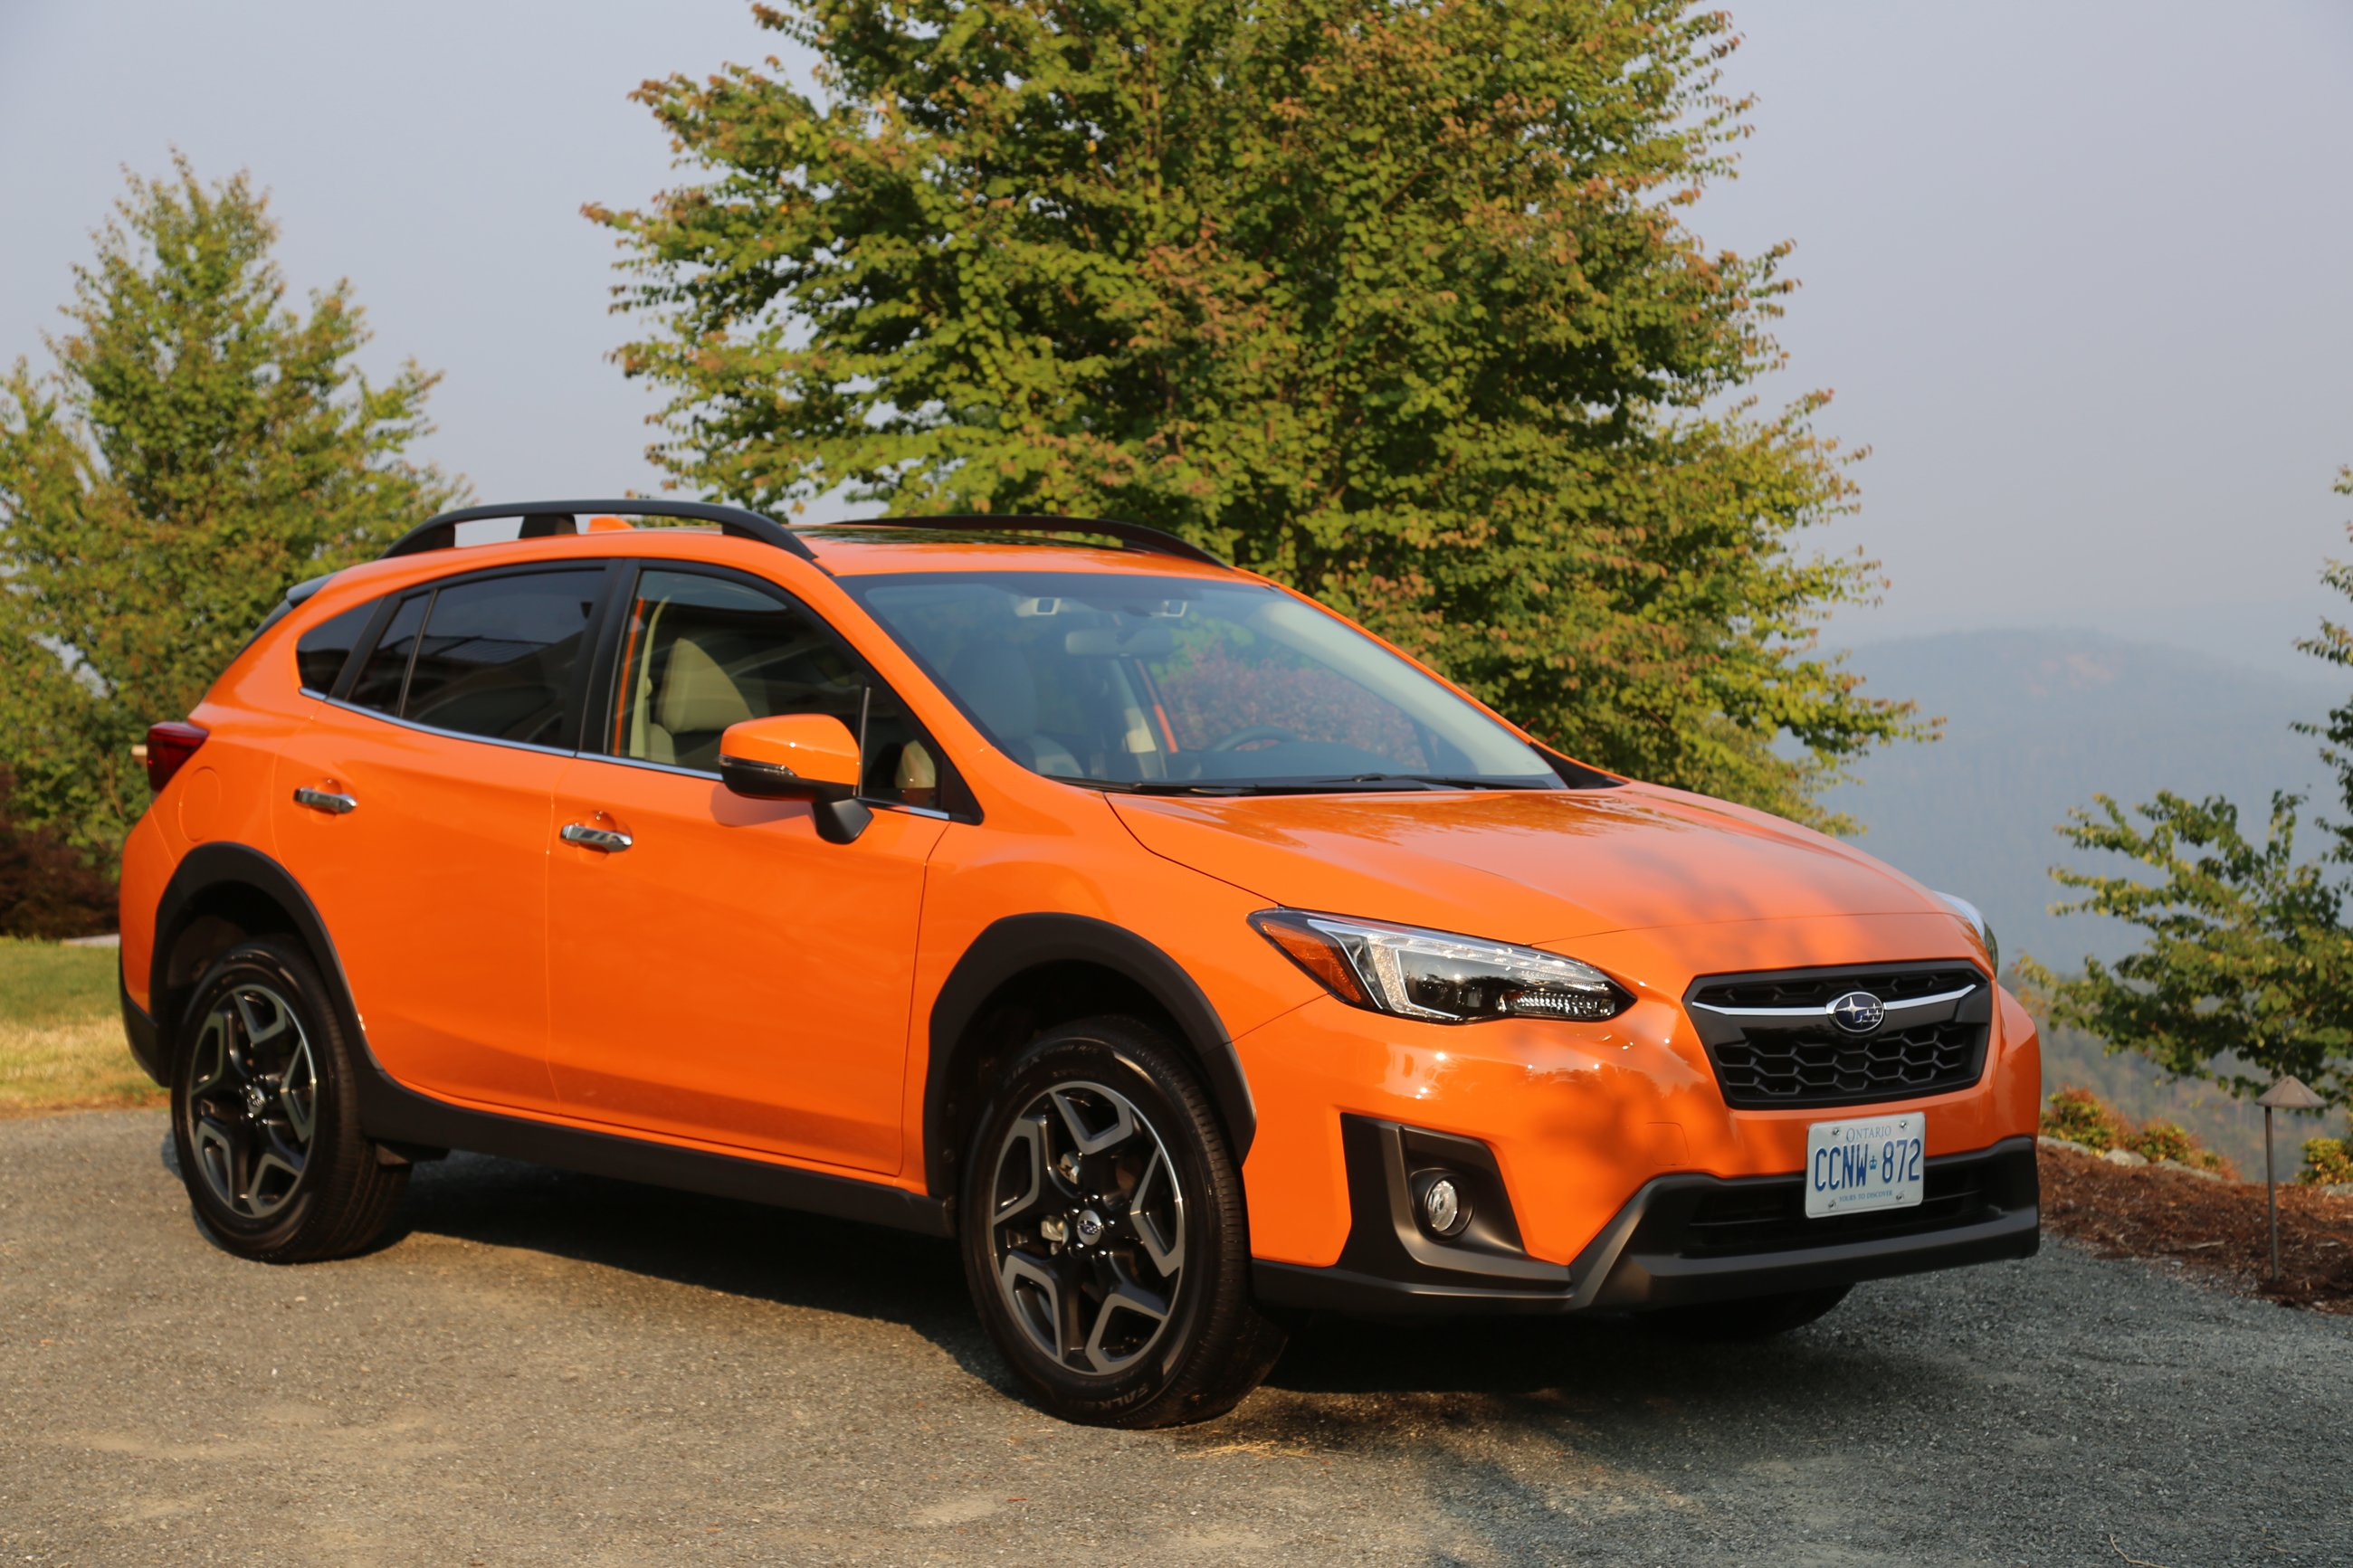 2018 subaru gas mileage.  mileage 2018subarucrosstrekreviewbc12 on 2018 subaru gas mileage